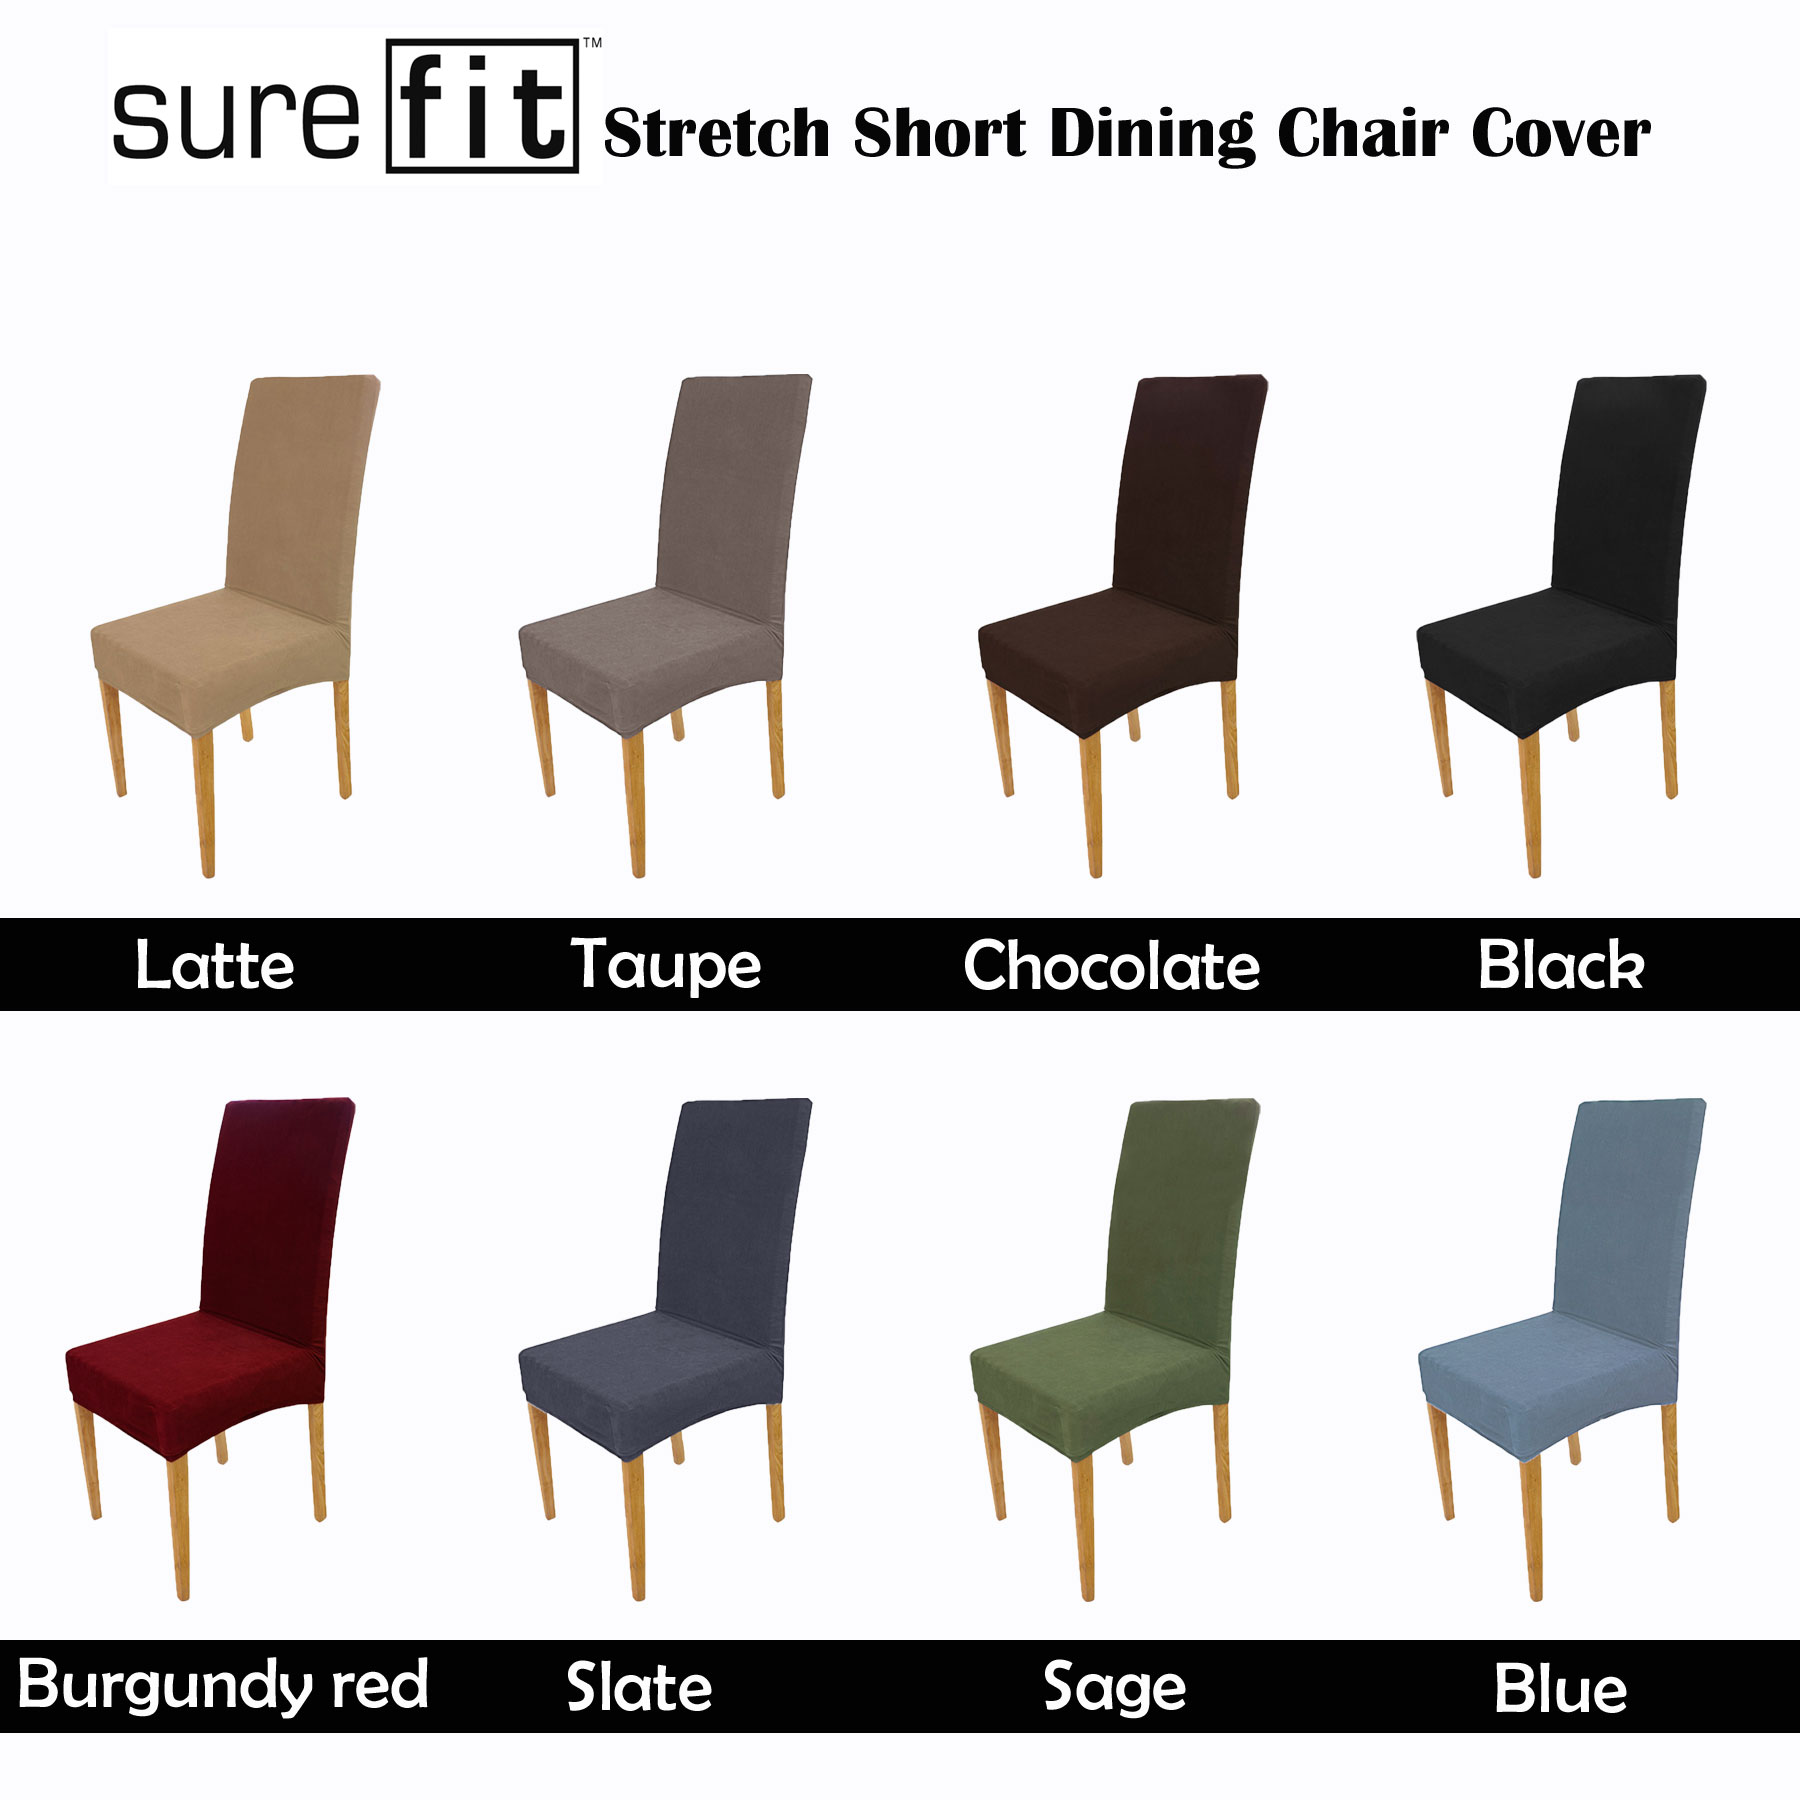 Sensational Details About Color Choice Surefit Stretch Short Corduroy Dining Chair Cover Machine Washable Uwap Interior Chair Design Uwaporg